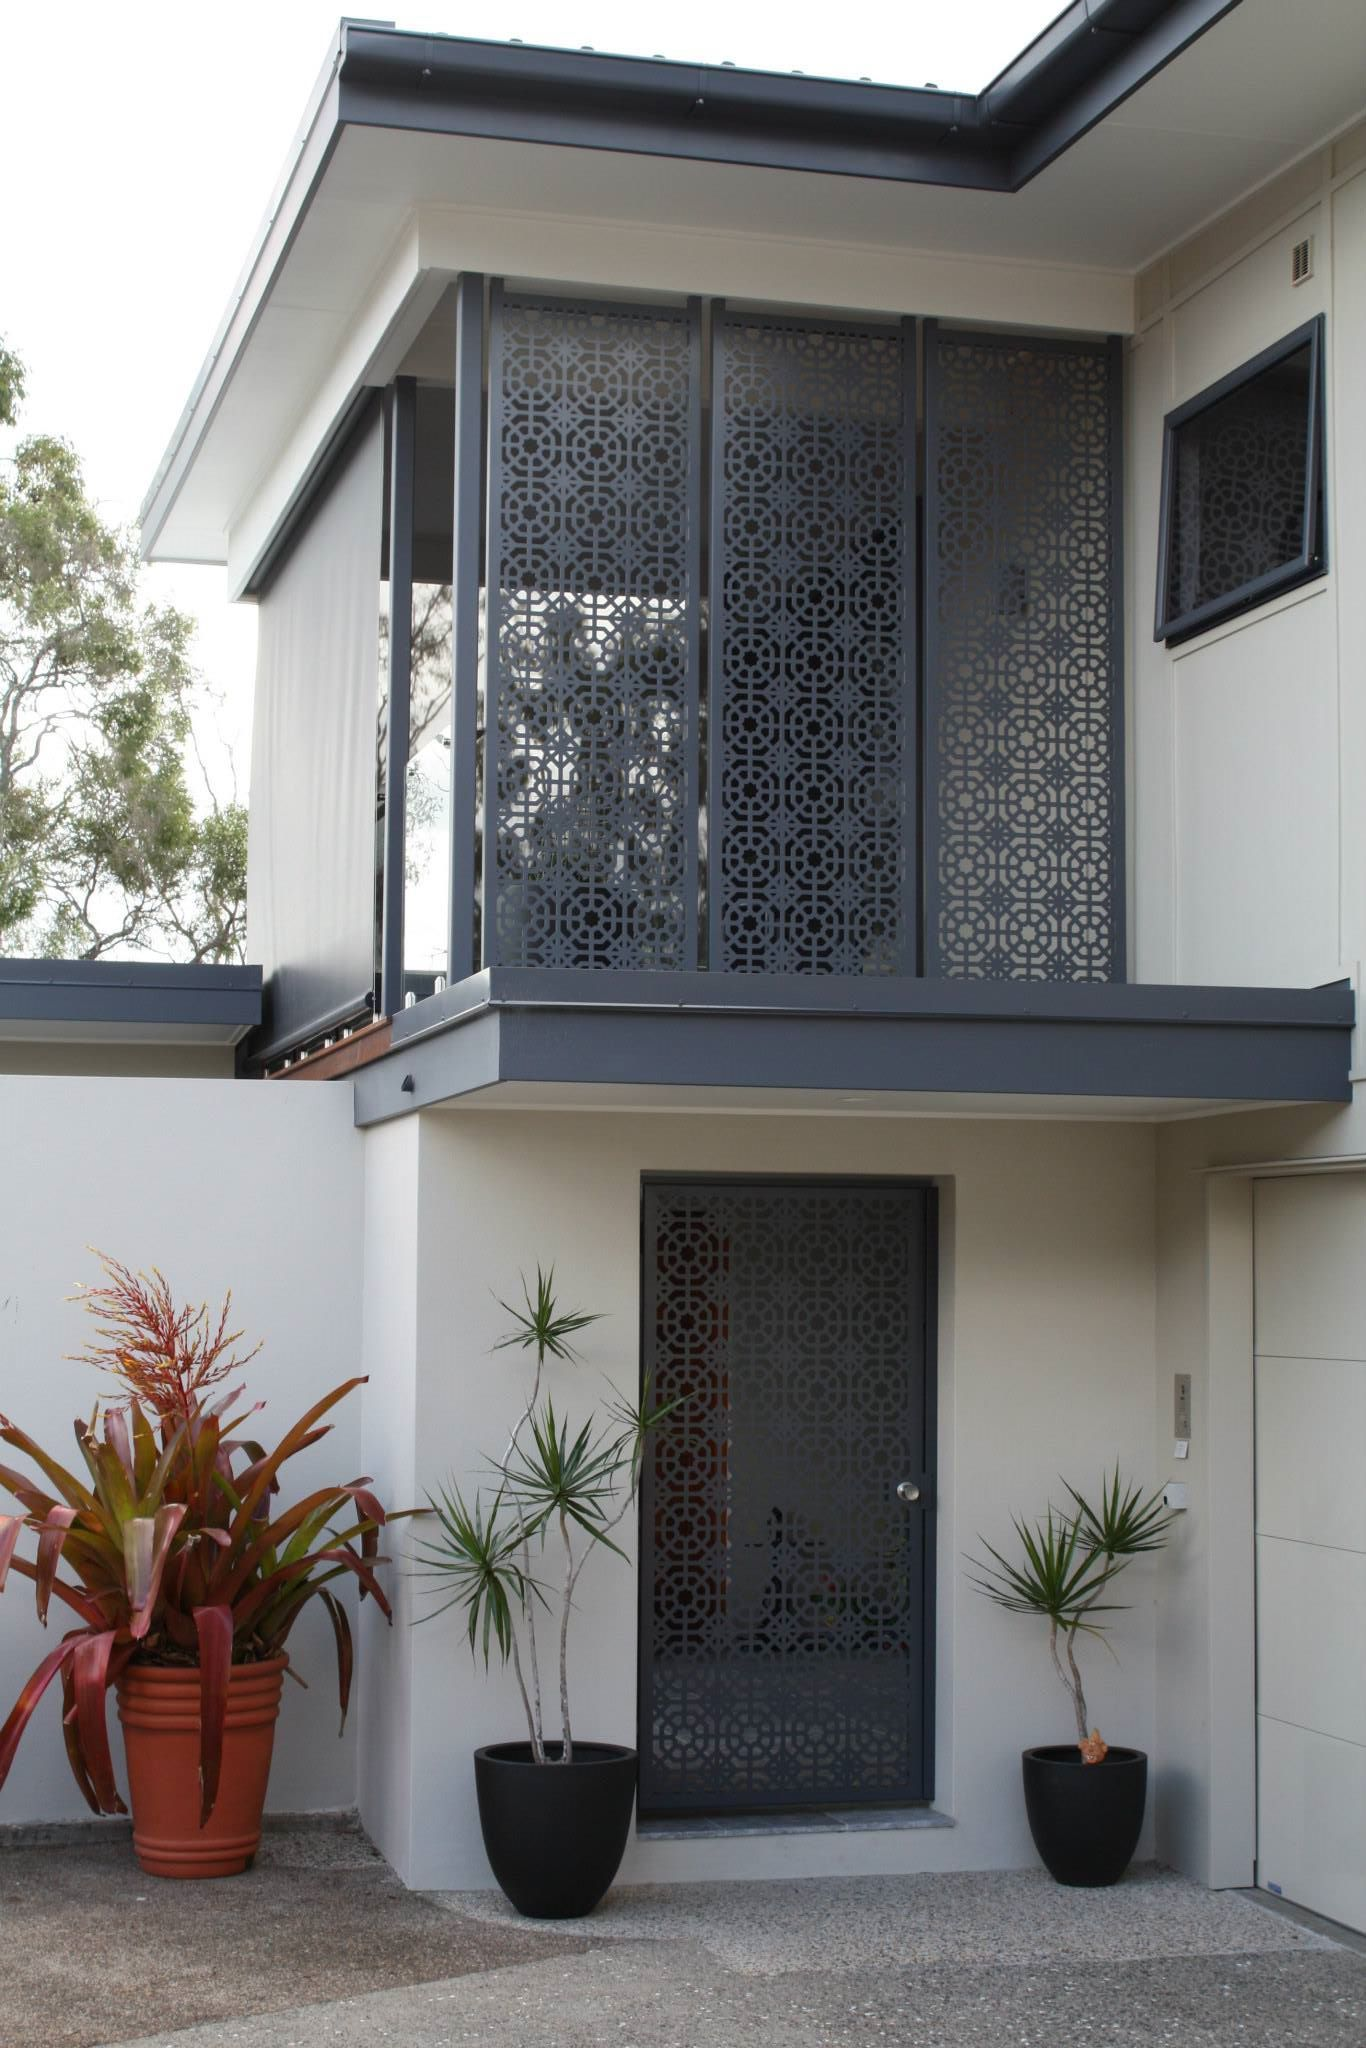 Decorative Driveway Gates for residential and commercial